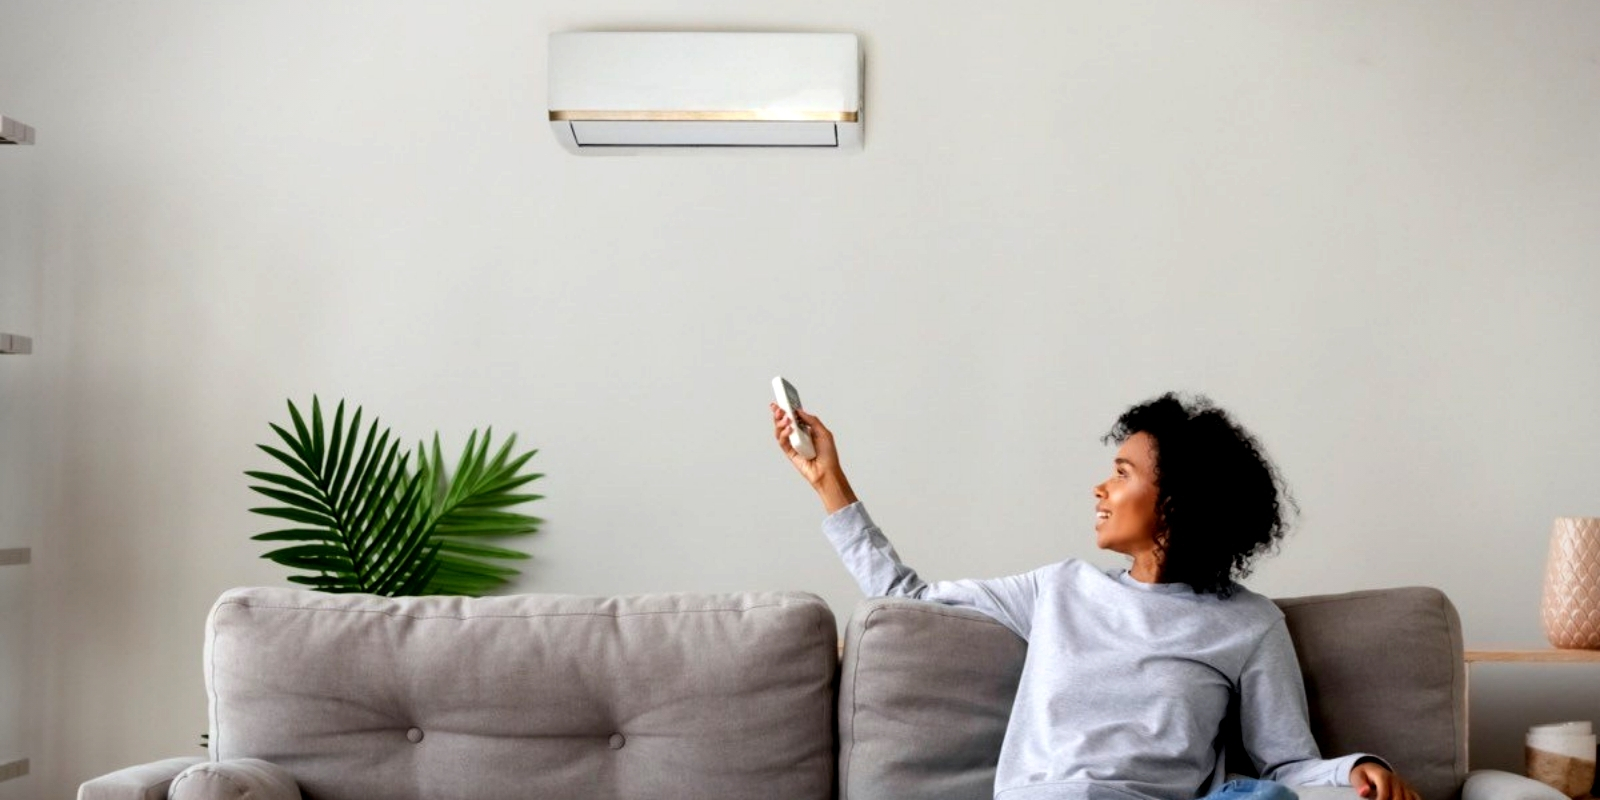 preventing the Loss of cool air reduce electric bill cornerstone protection